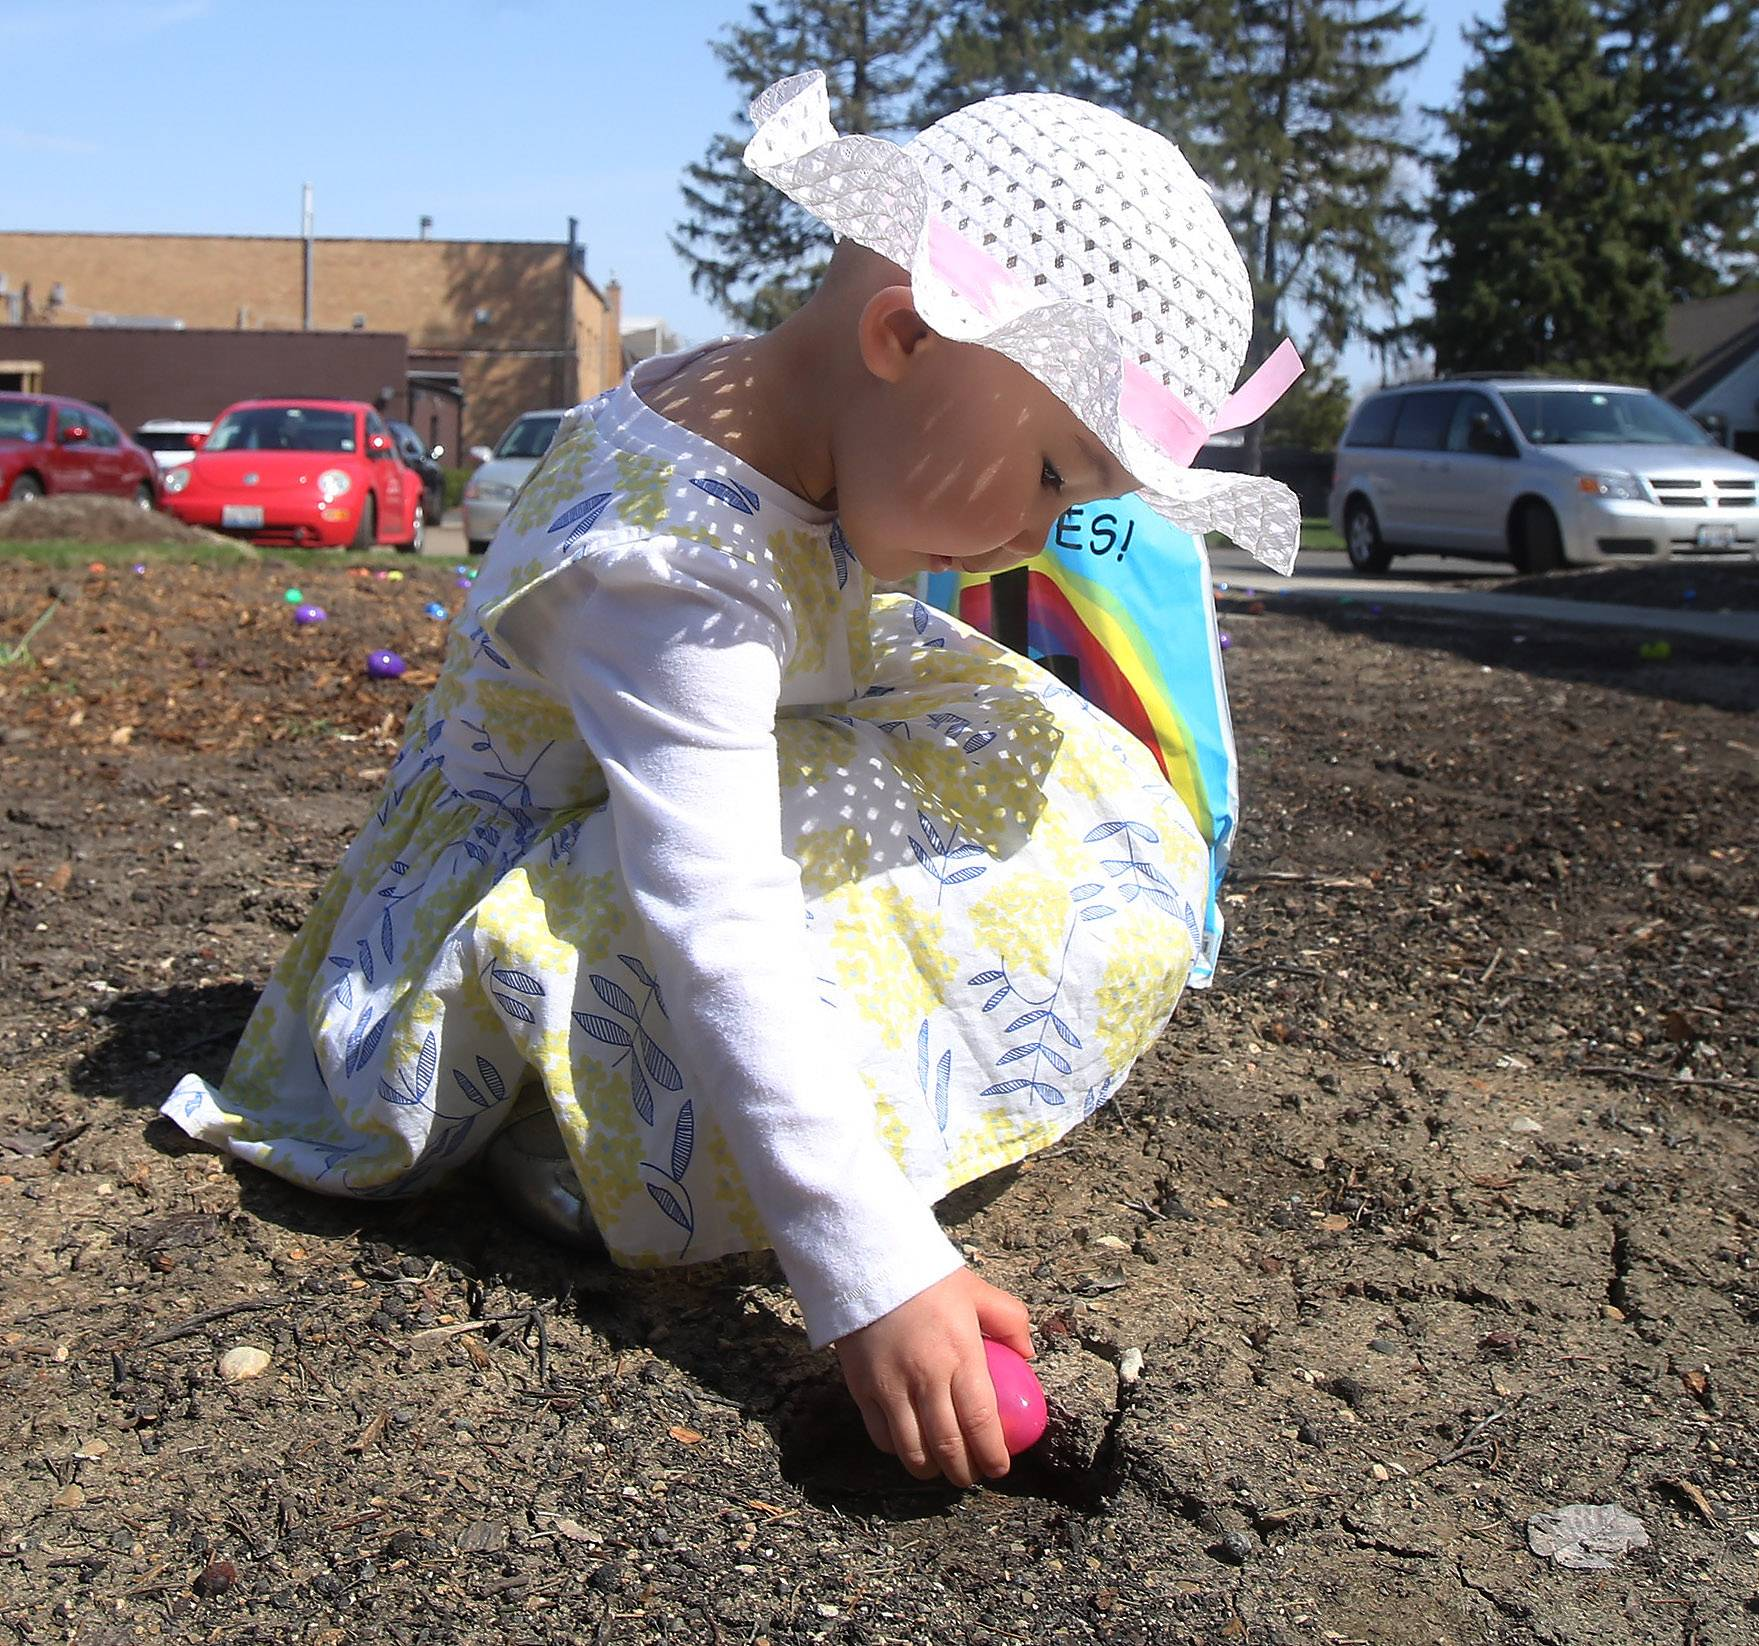 Two-year-old Jolene Tugs, of Arlington Heights, reaches down for an Easter egg during the Faith Lutheran Church Eggstravaganza event Easter Sunday in Arlington Heights. About 30 children searched for 850 eggs, worked on religious crafts, and listened to the story of Easter.